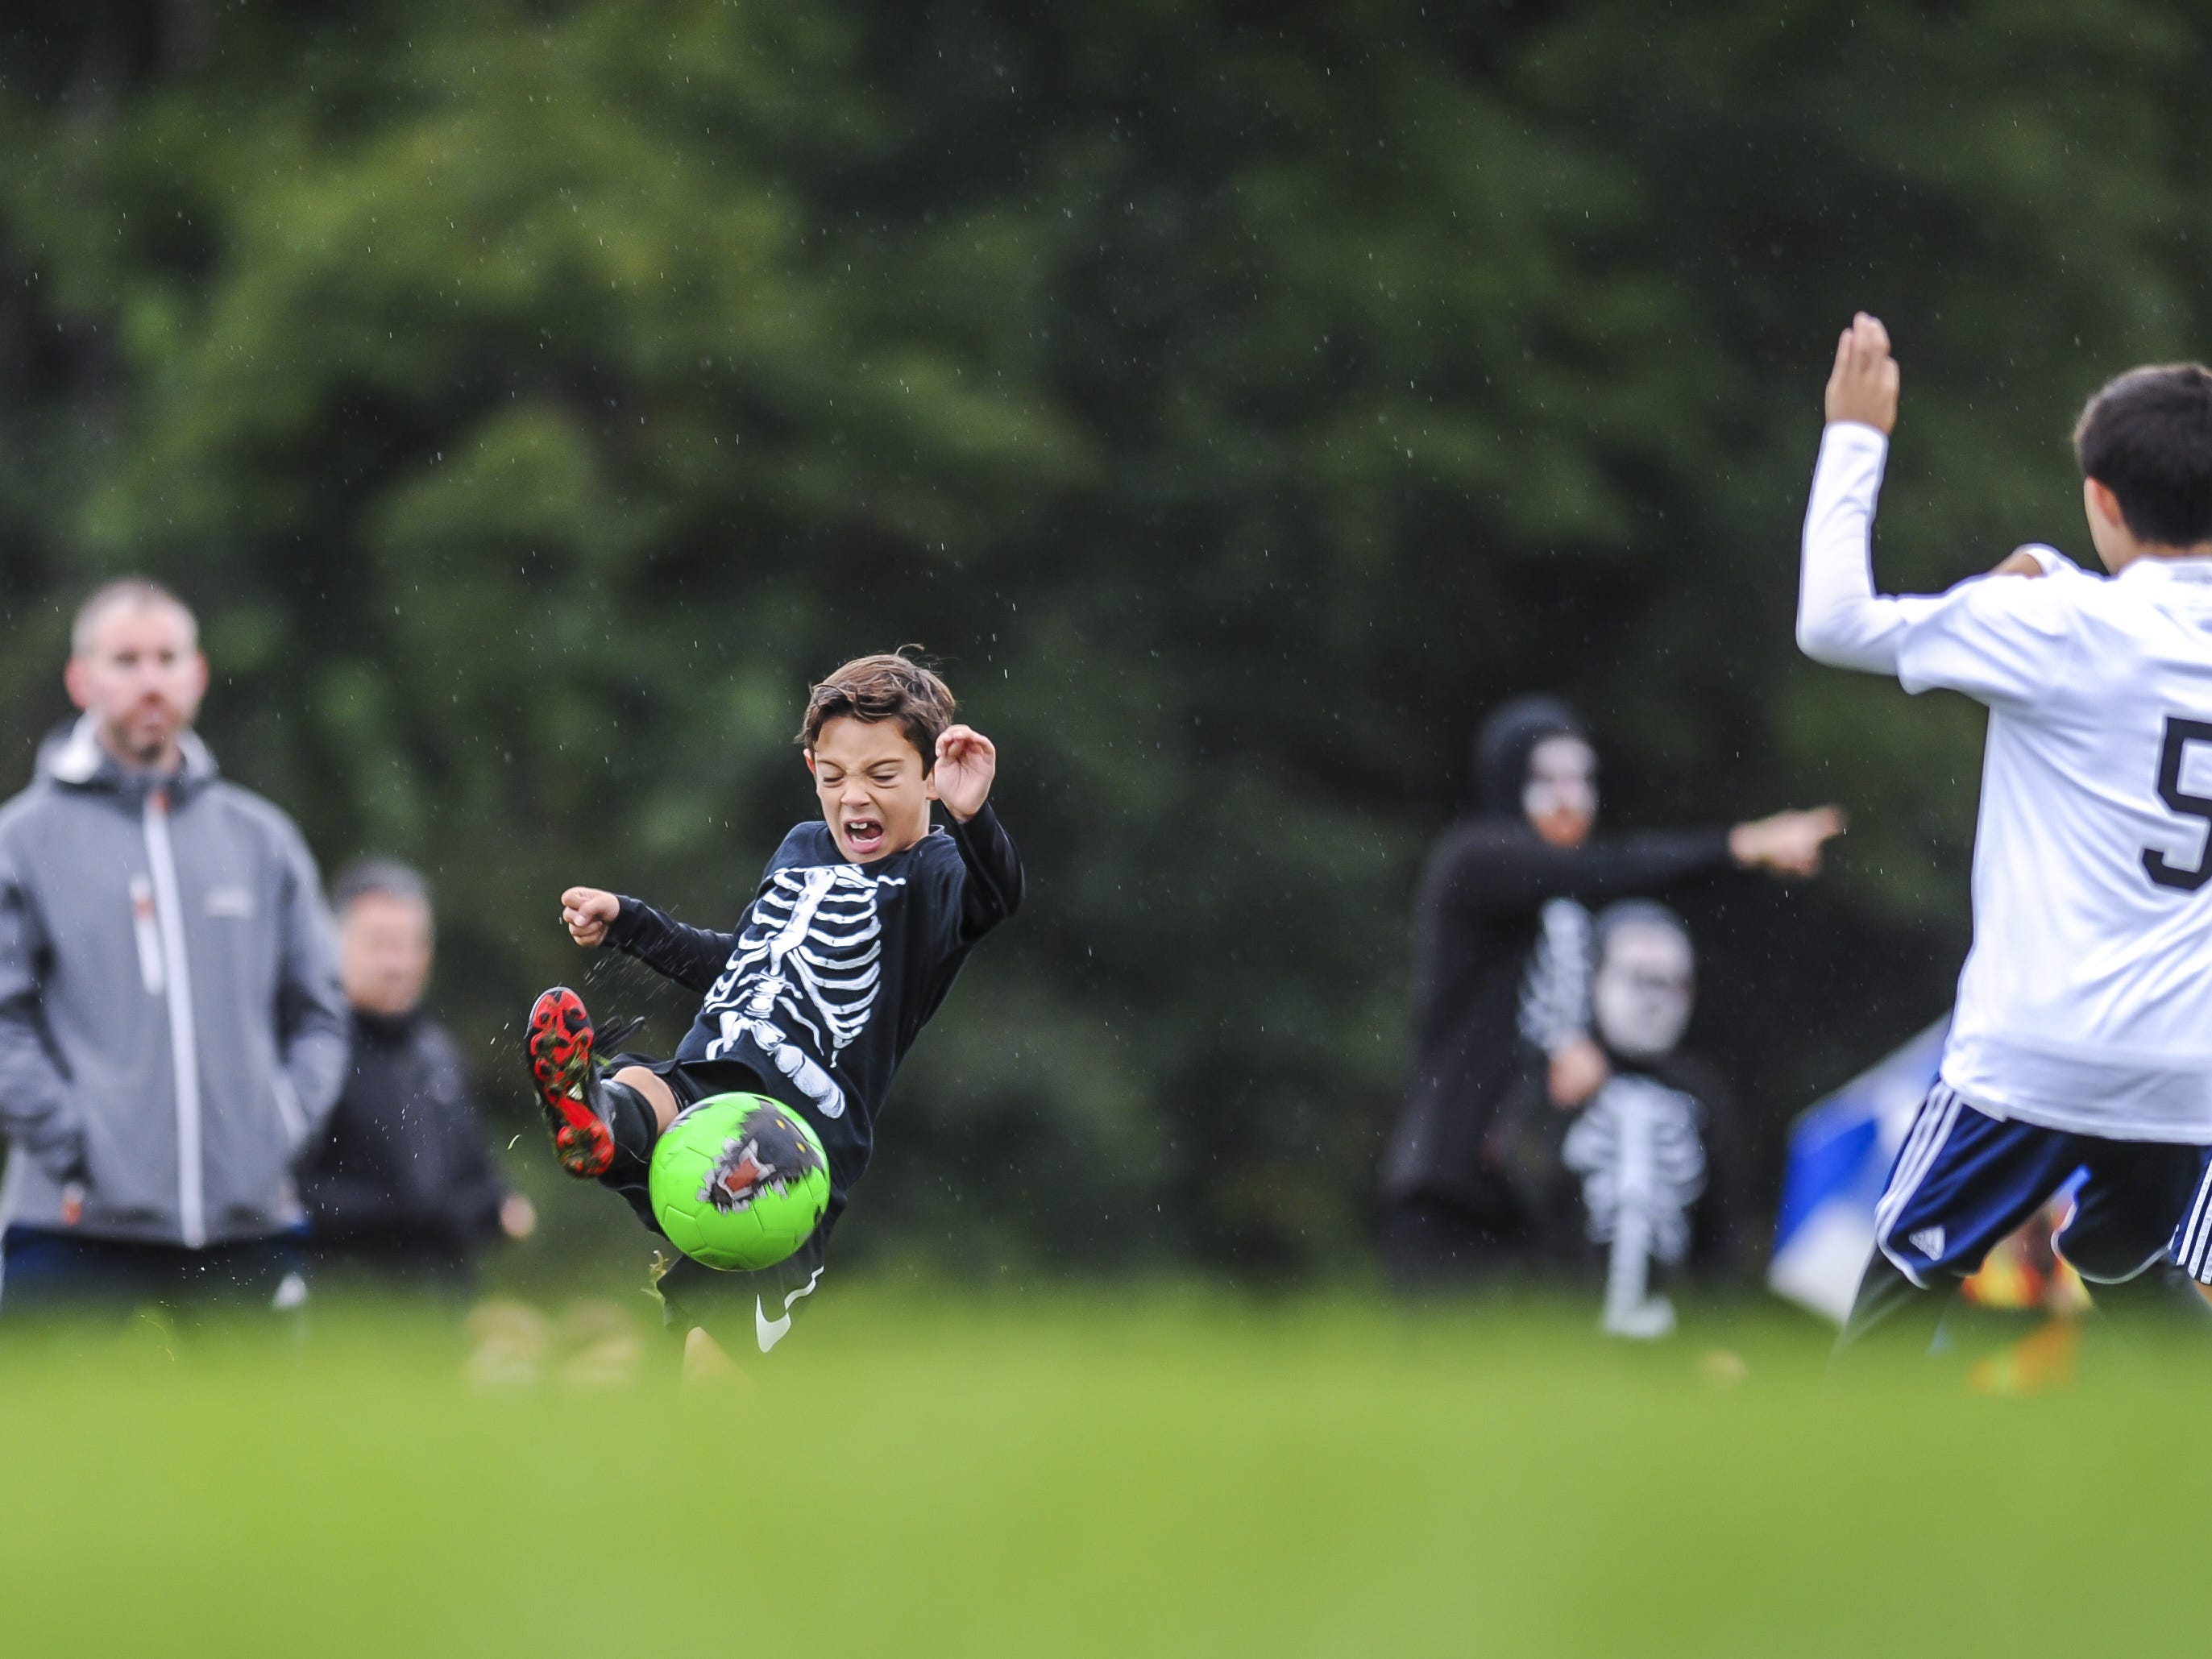 Freehold Soccer League hosted their 20th Halloween-themed Fright Fest Tournament where teams wear Halloween costumes as uniforms and the fields are decked out with spooky decorations  at Michael J. Tighe Park in Freehold on Oct. 13, 2018.